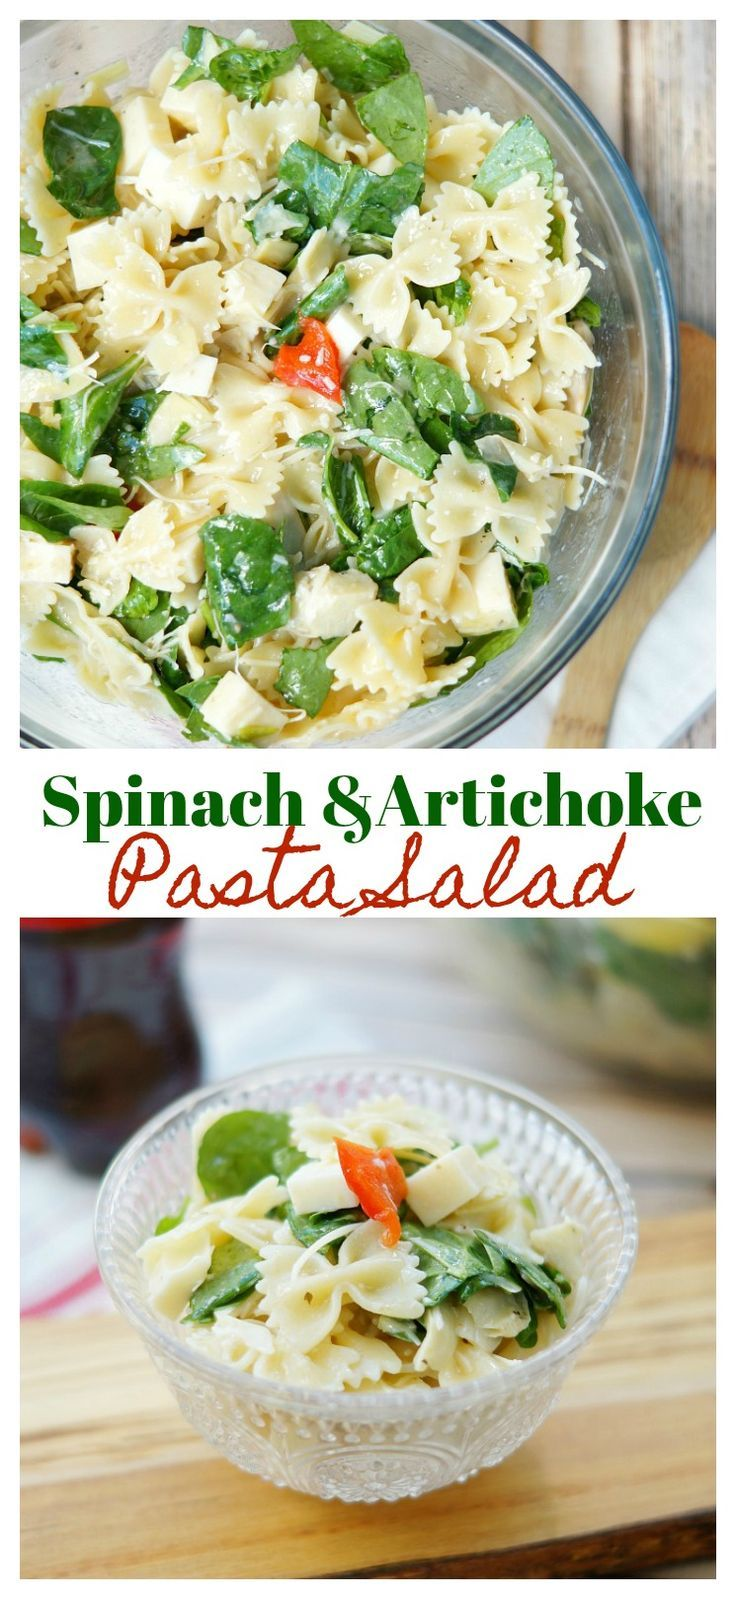 Spinach and Artichoke Pasta Salad #shareicecoldfun #ad @gianteagle